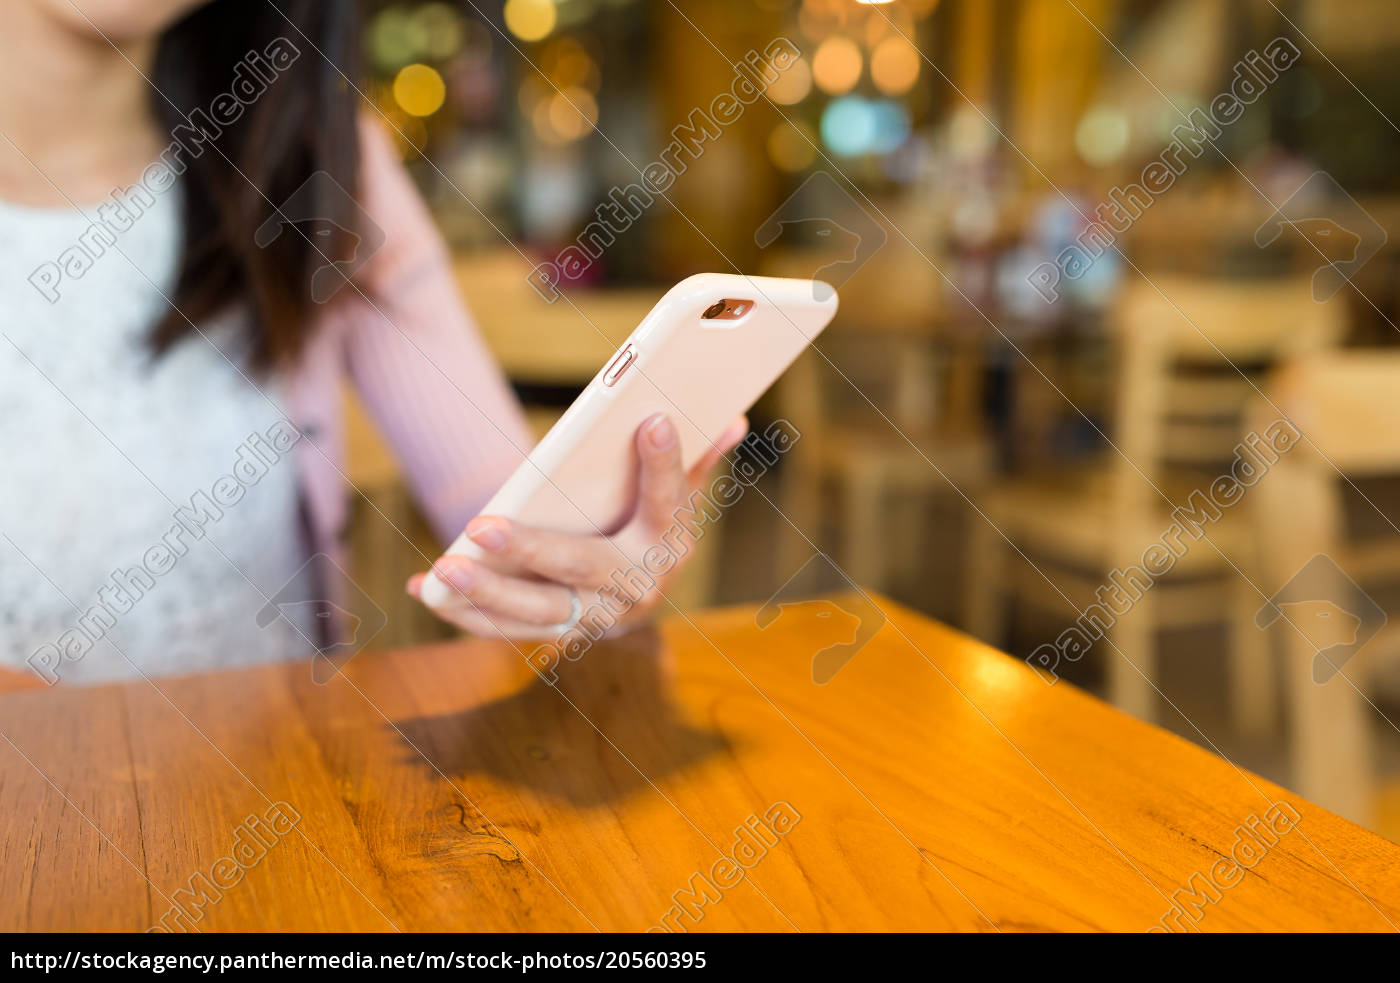 woman, use, of, cellphone, in, cafe - 20560395